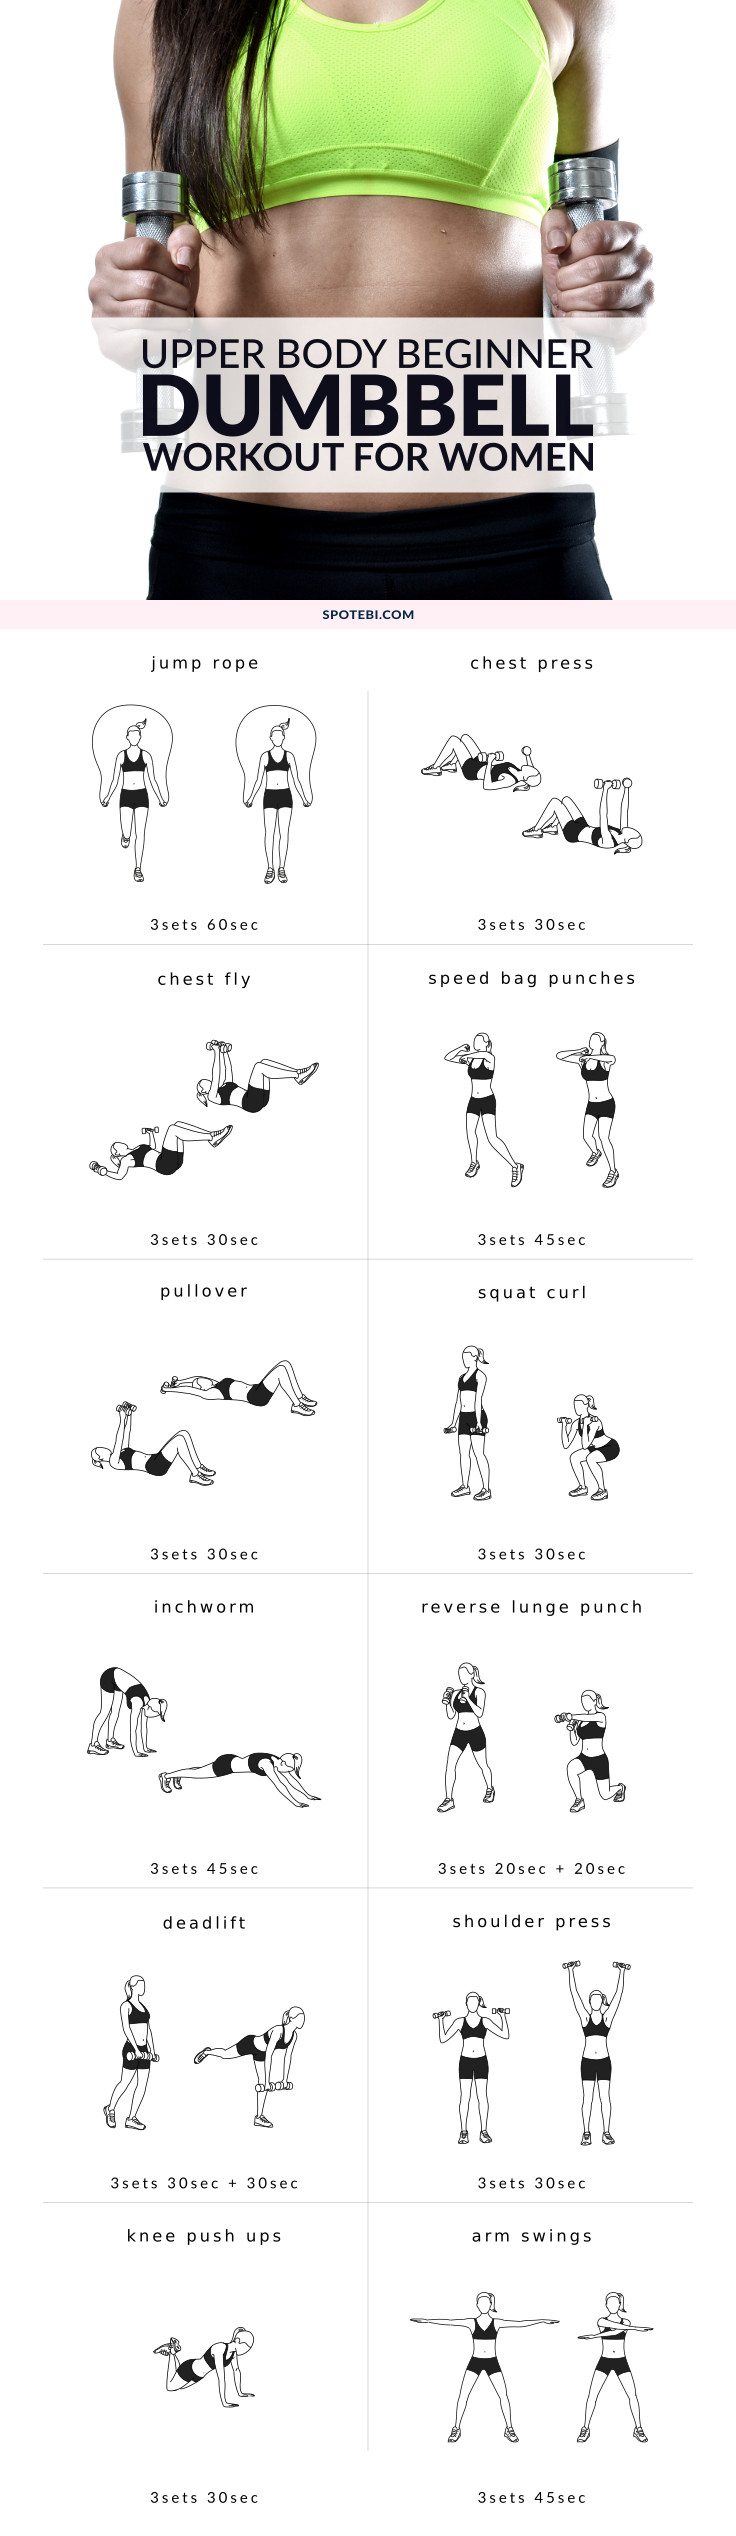 Strengthen your back and lift your chest with this upper body beginner workout for women. A set of 12 exercises to help you sculpt your body and improve your posture. https://www.spotebi.com/workout-routines/upper-body-beginner-workout-women/